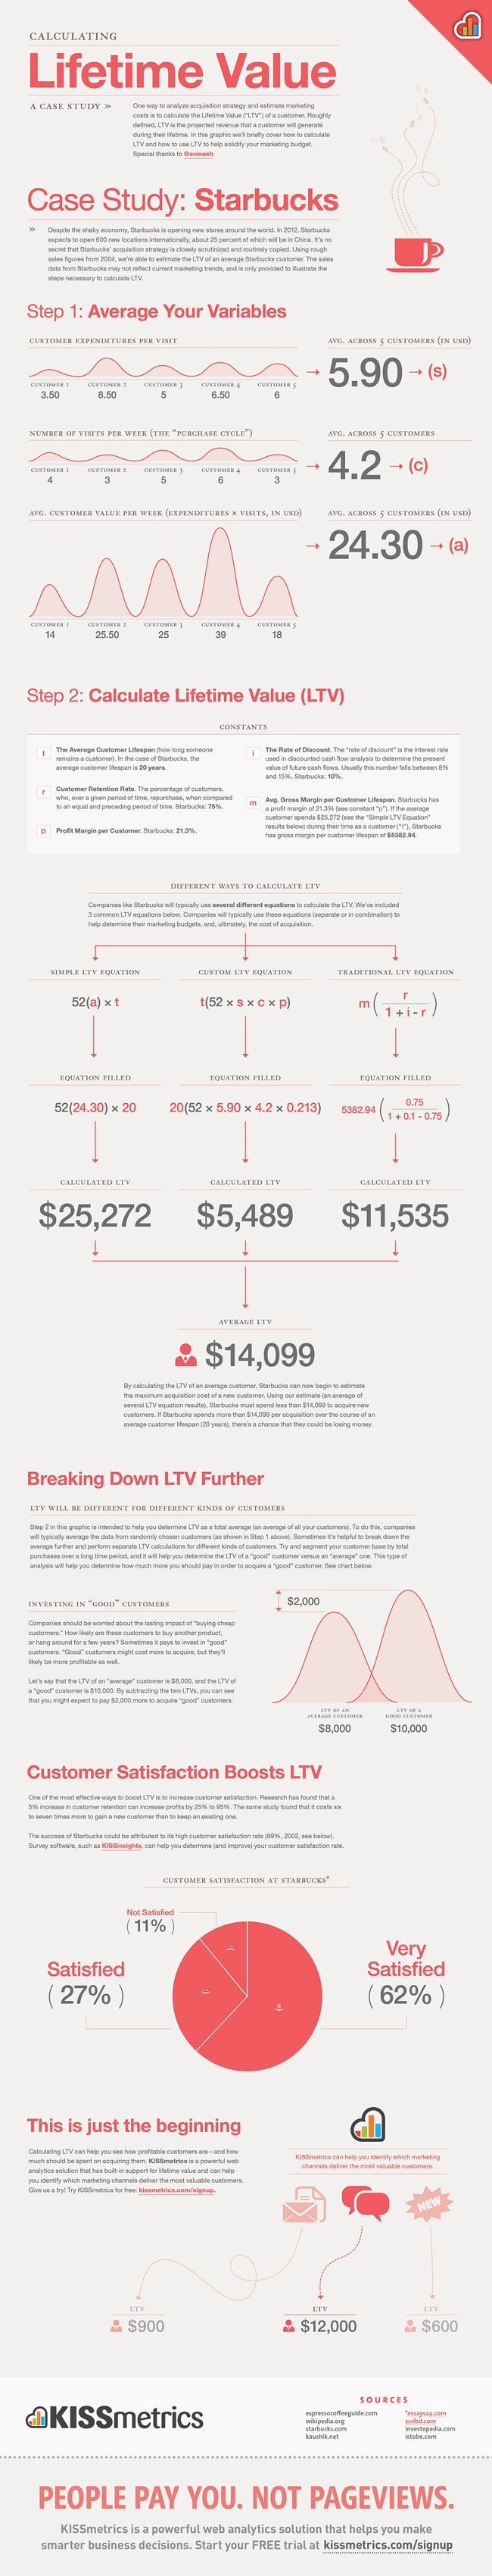 Learn how to calculate customer lifetime value (LTV) with this infographic from @KISSmetrics, via @HubSpot